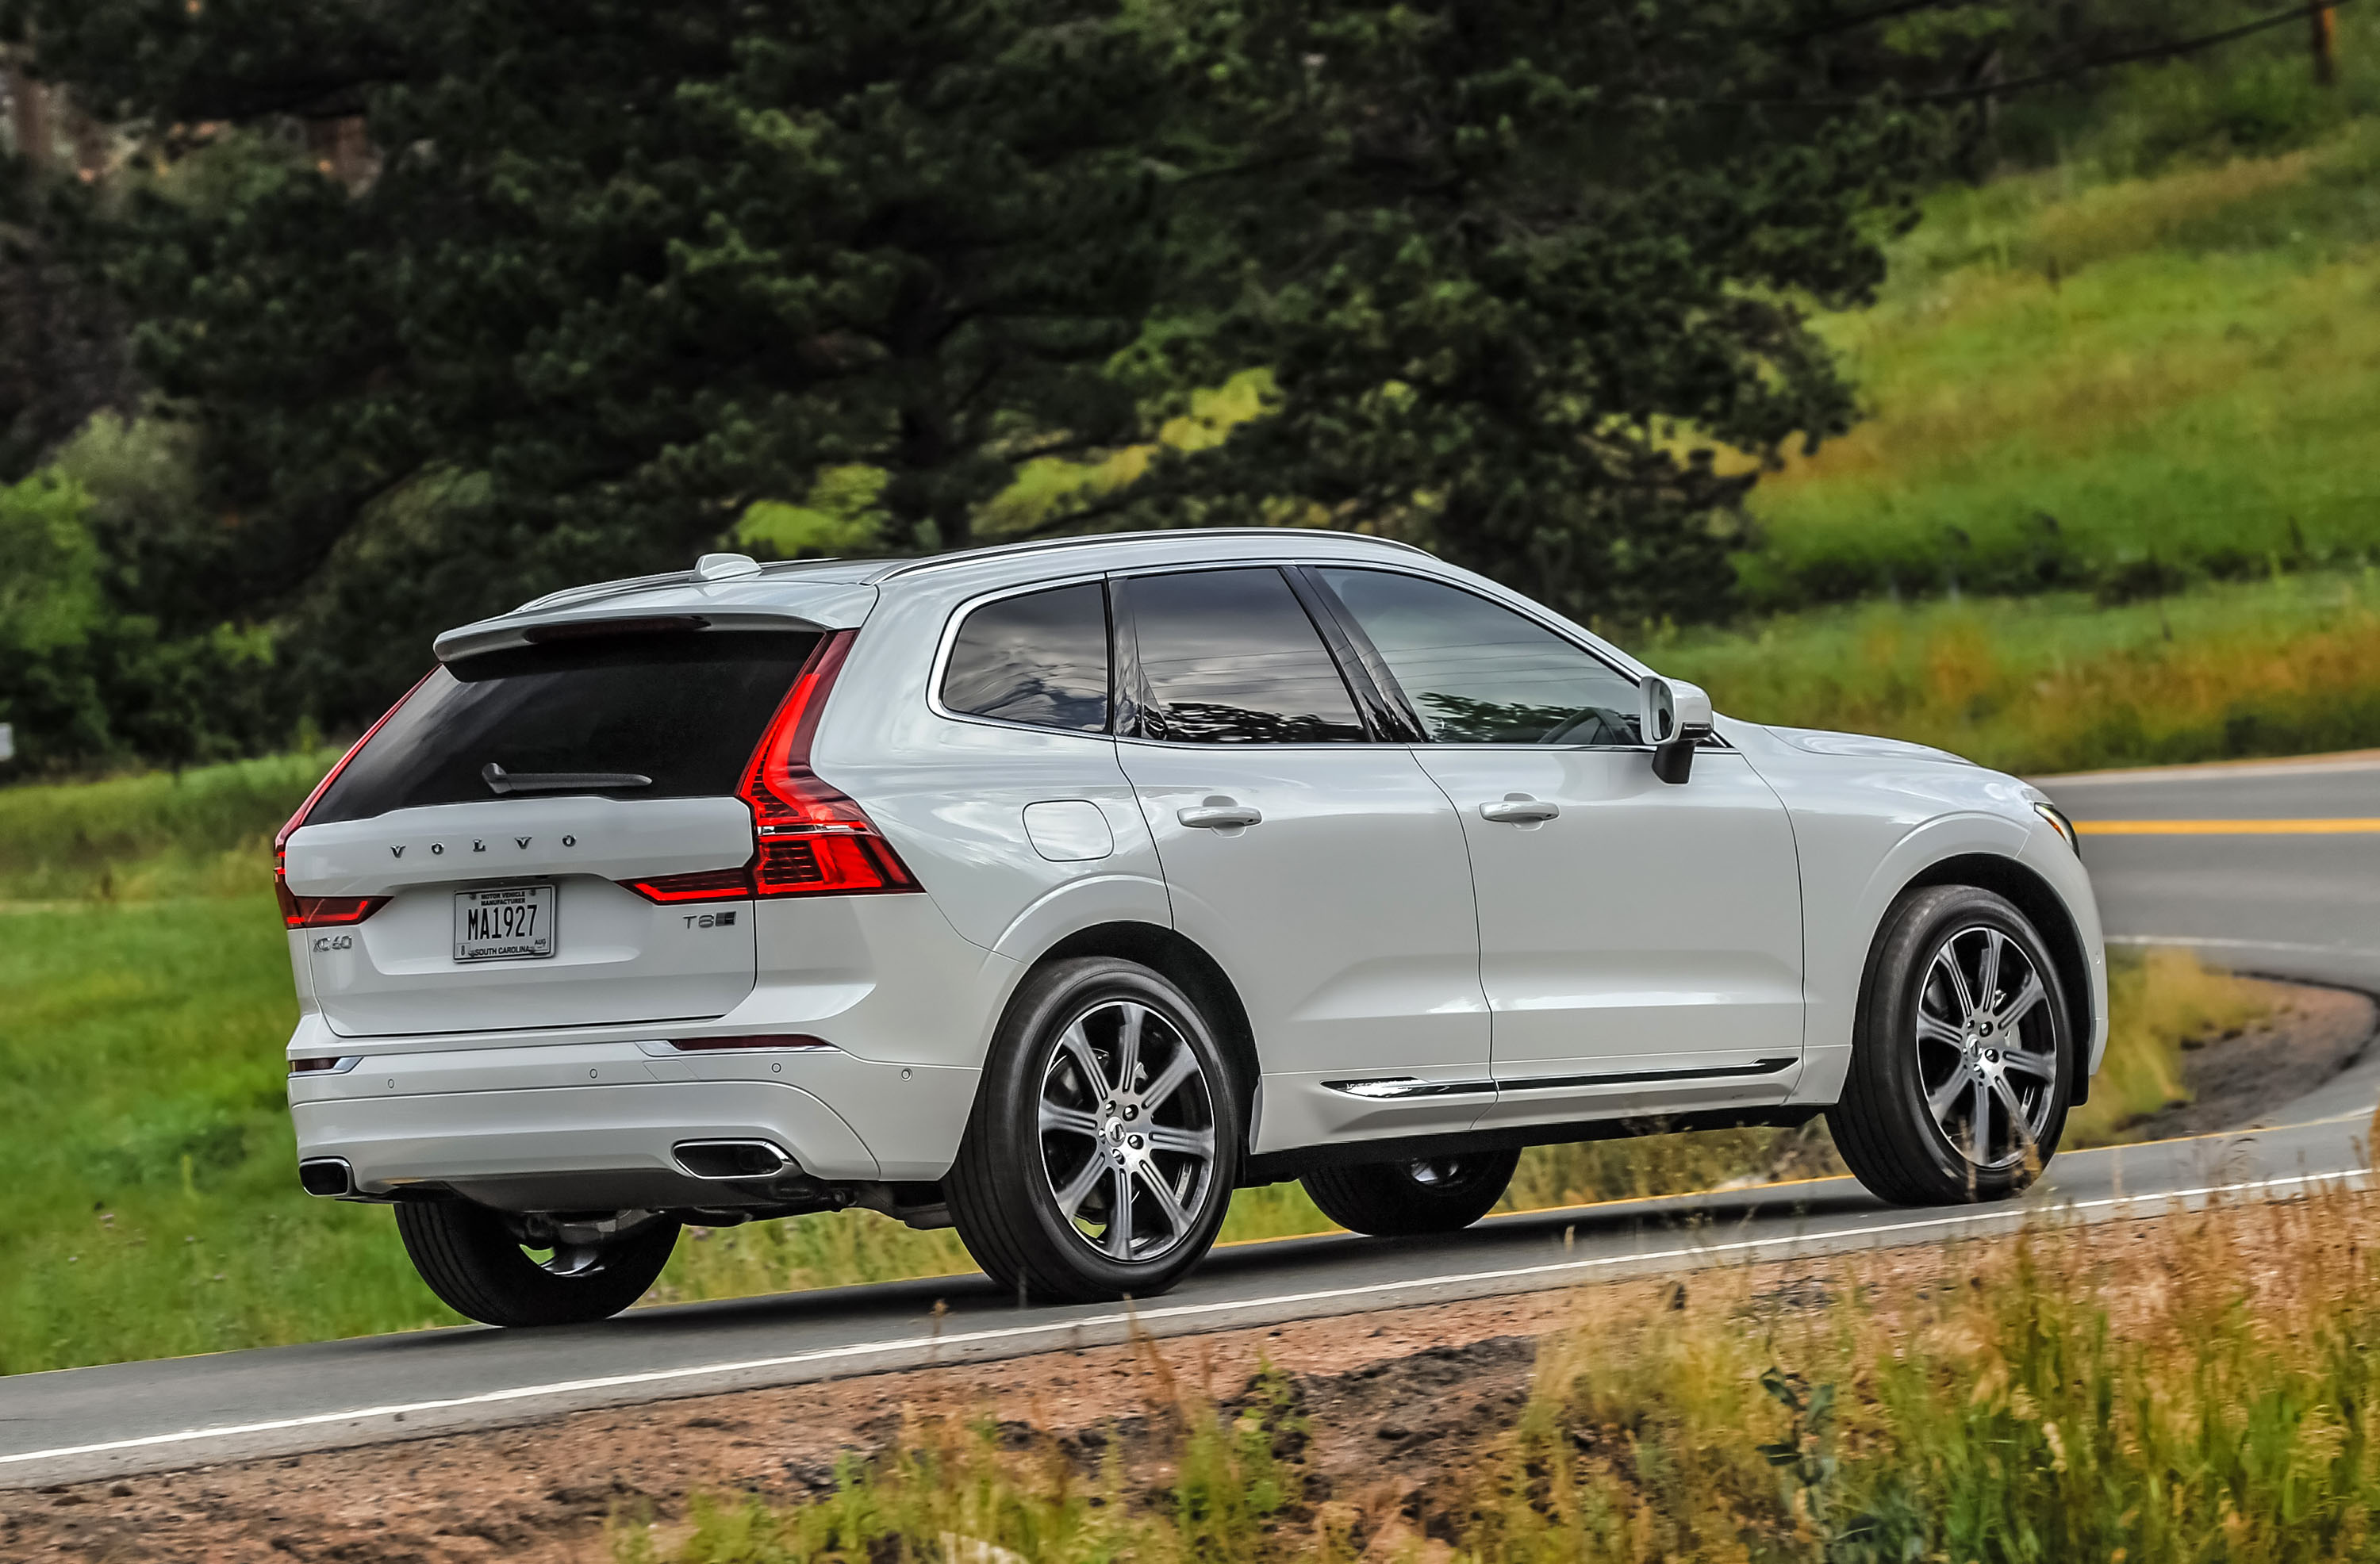 2018 Volvo XC60 T8 first drive review: The accidental ...